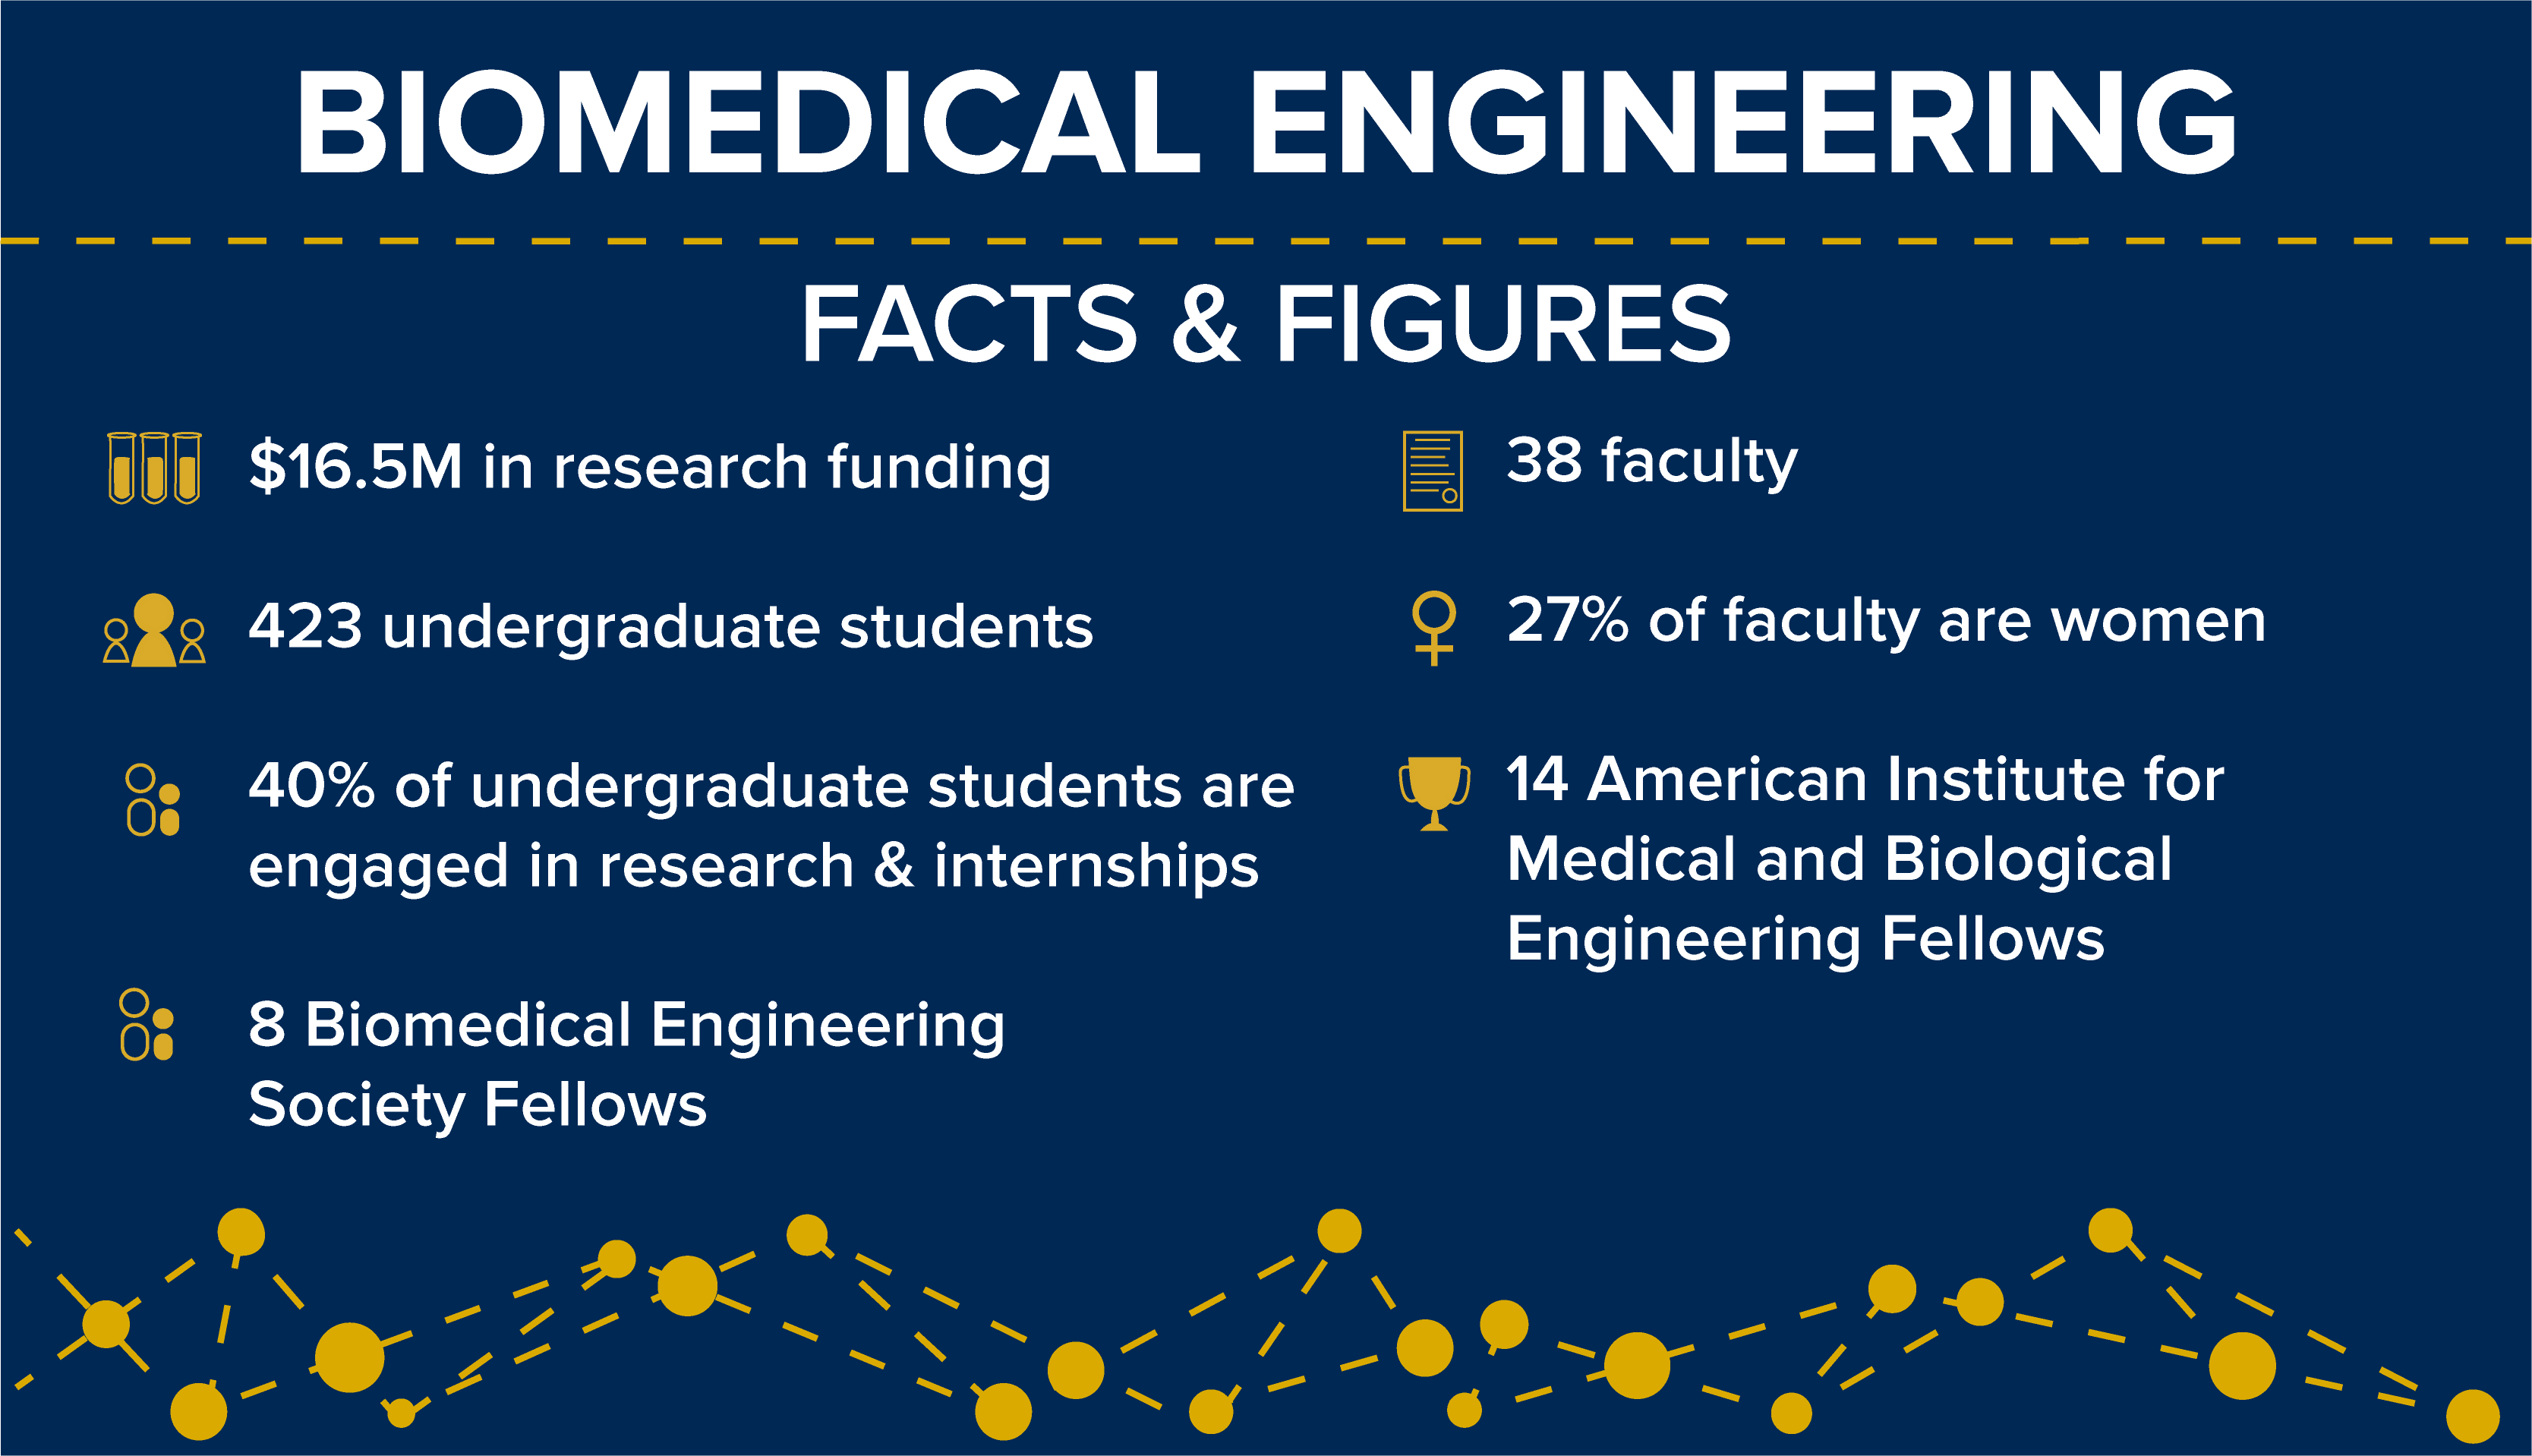 uc davis biomedical engineering fast facts